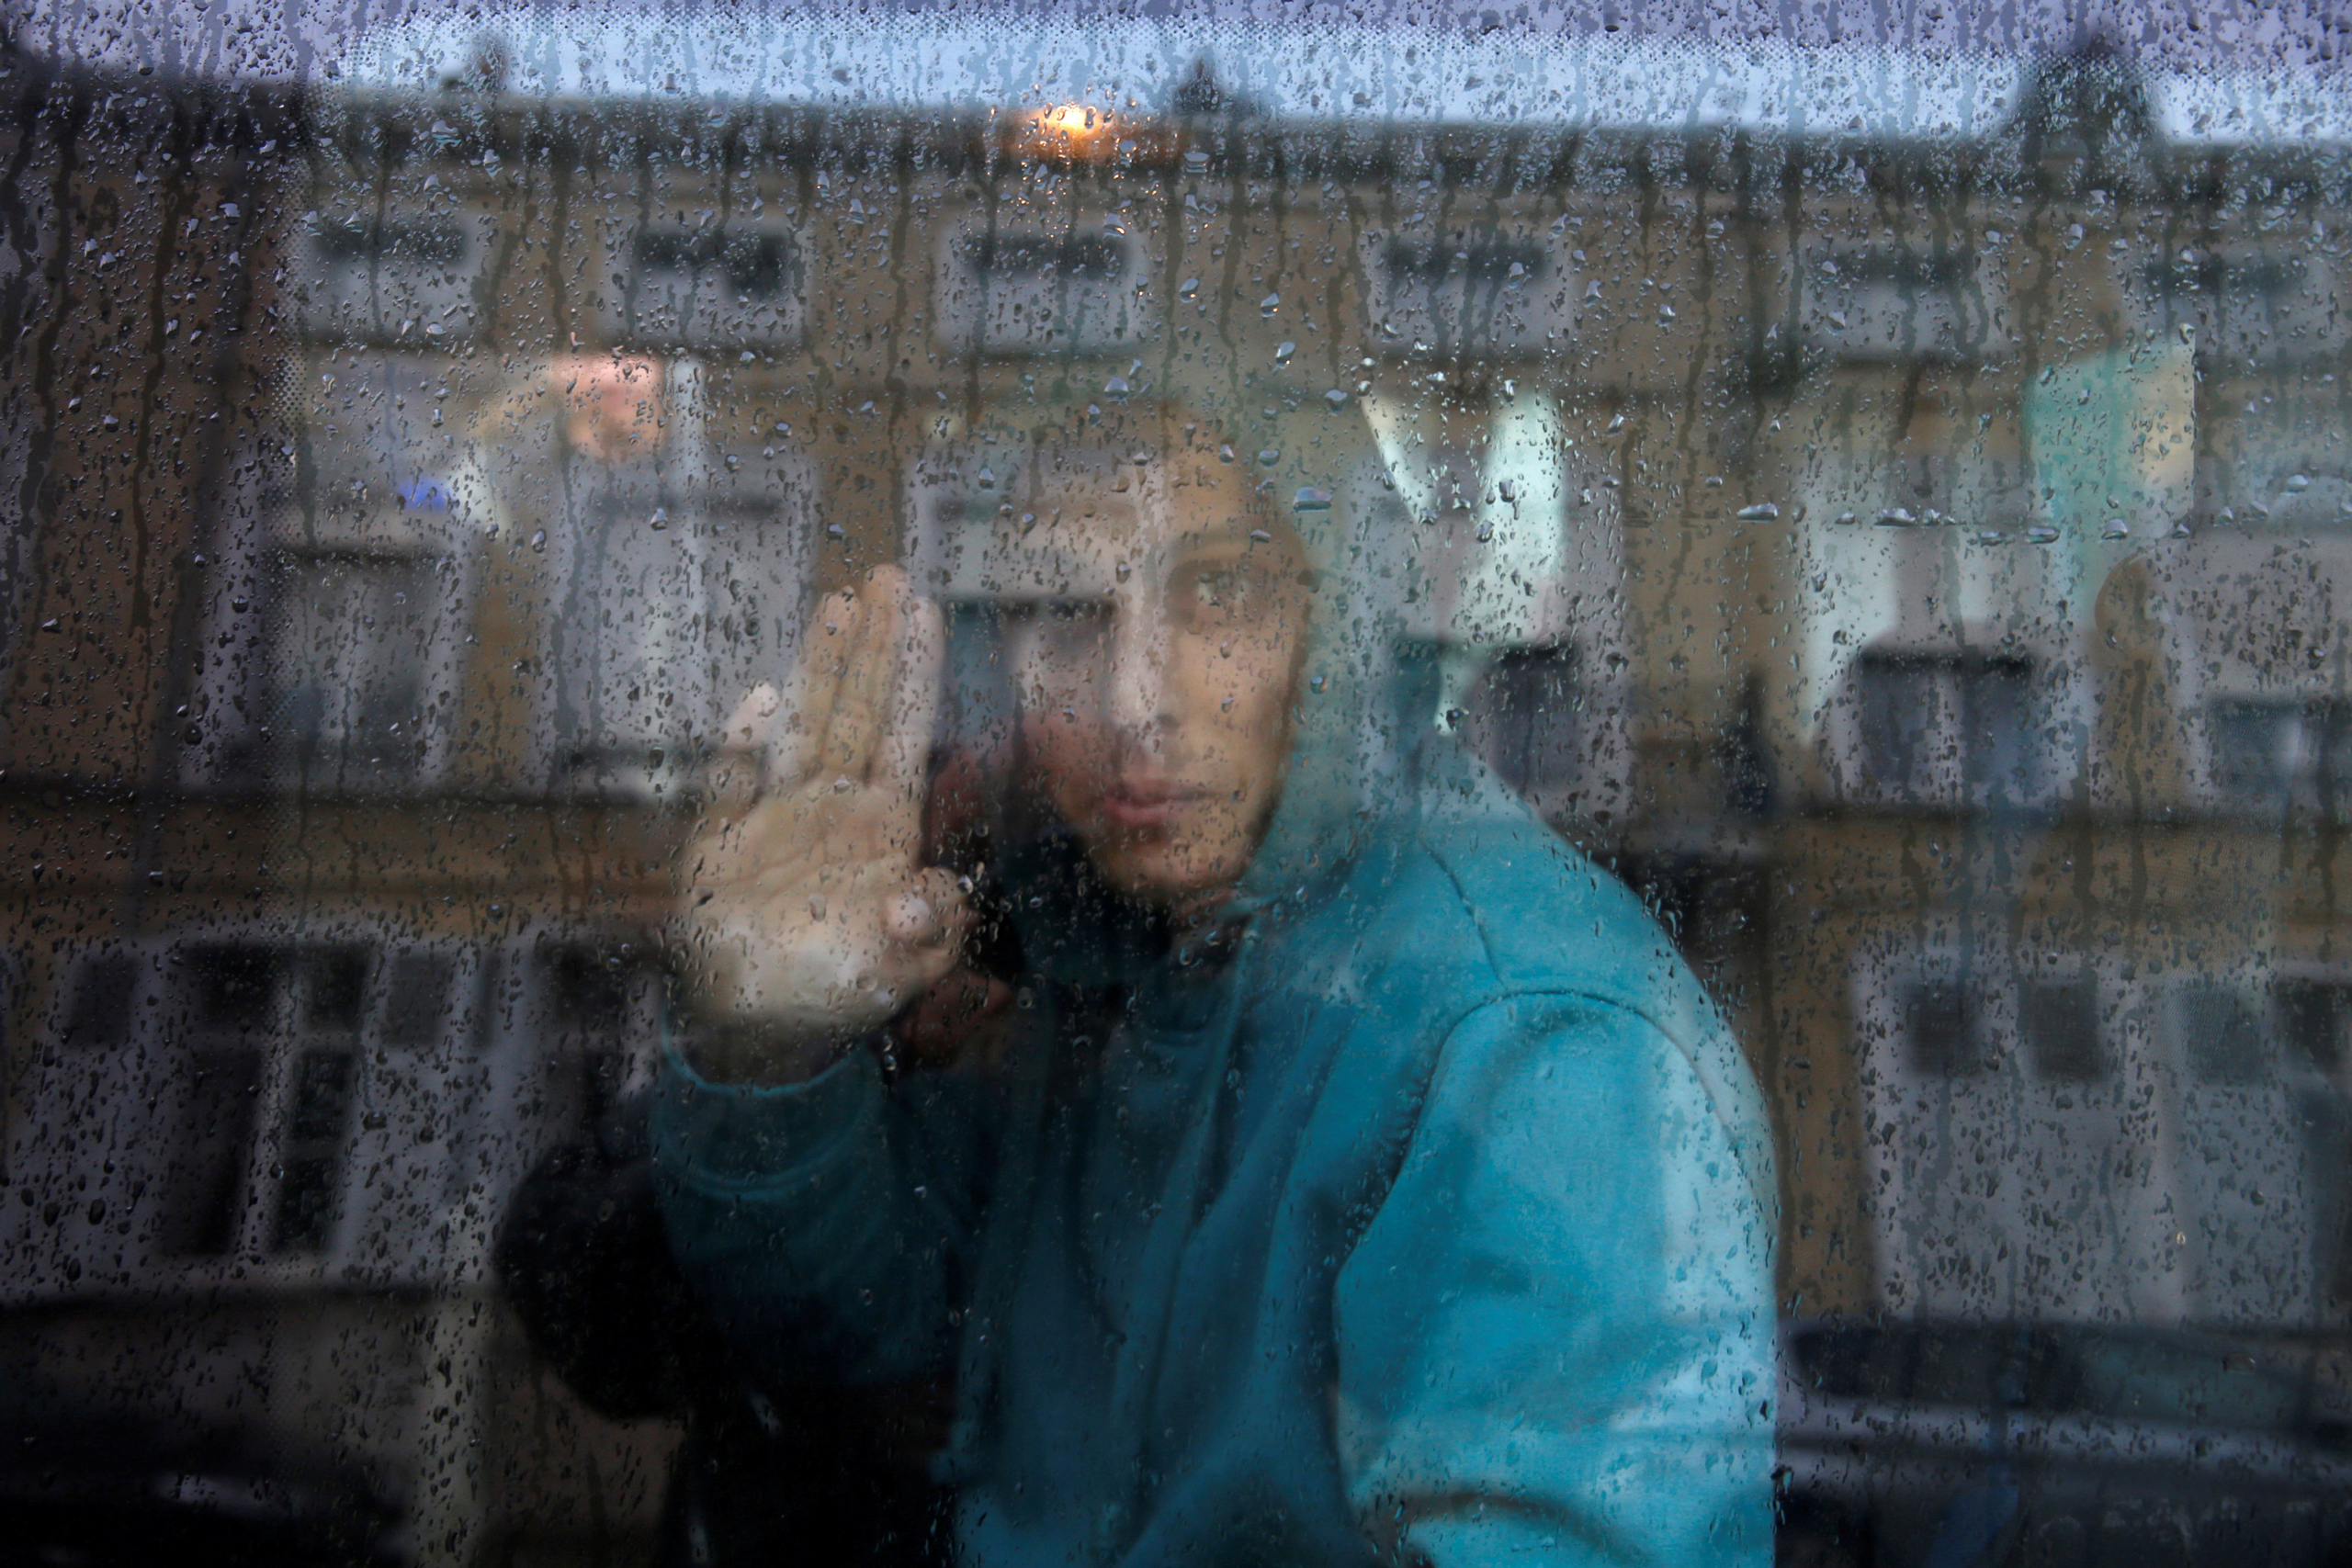 An Afghan adolescent migrant waves from a van as he departs with six others for Britain from the emergency shelter for minors in Saint Omer, France, on Oct. 18, 2016.